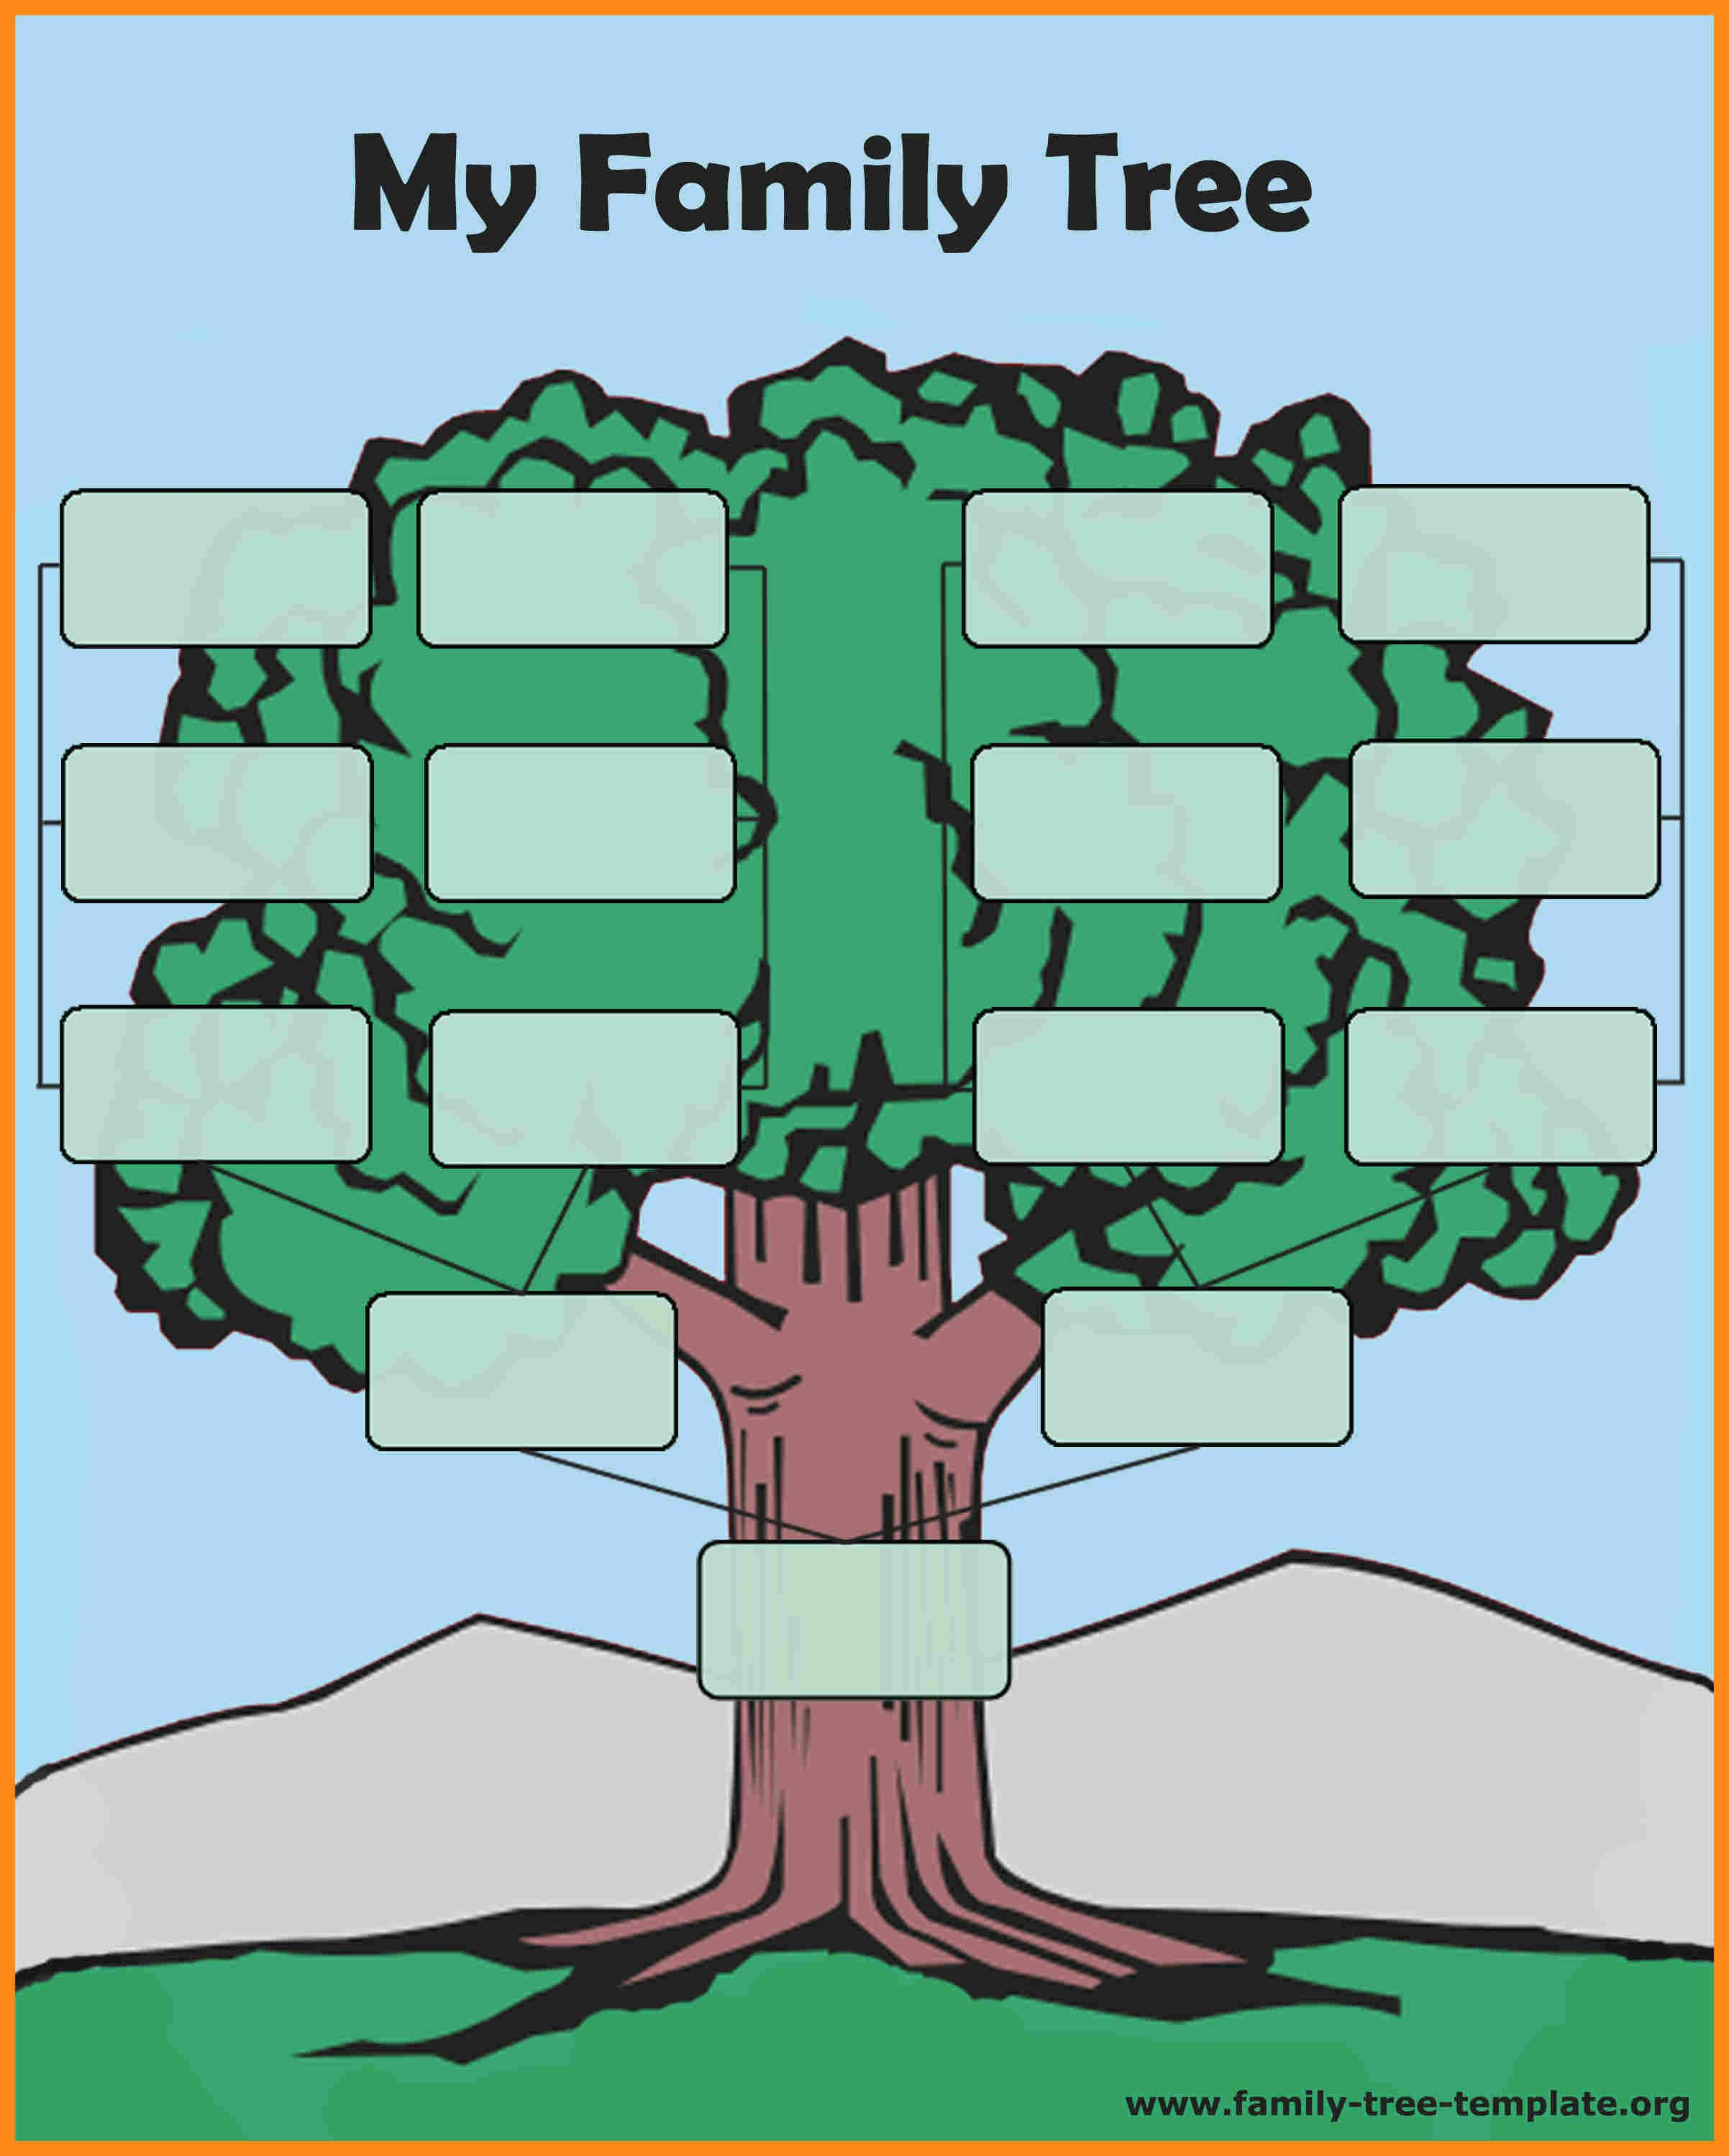 Family Tree Maker Templates With Pictures